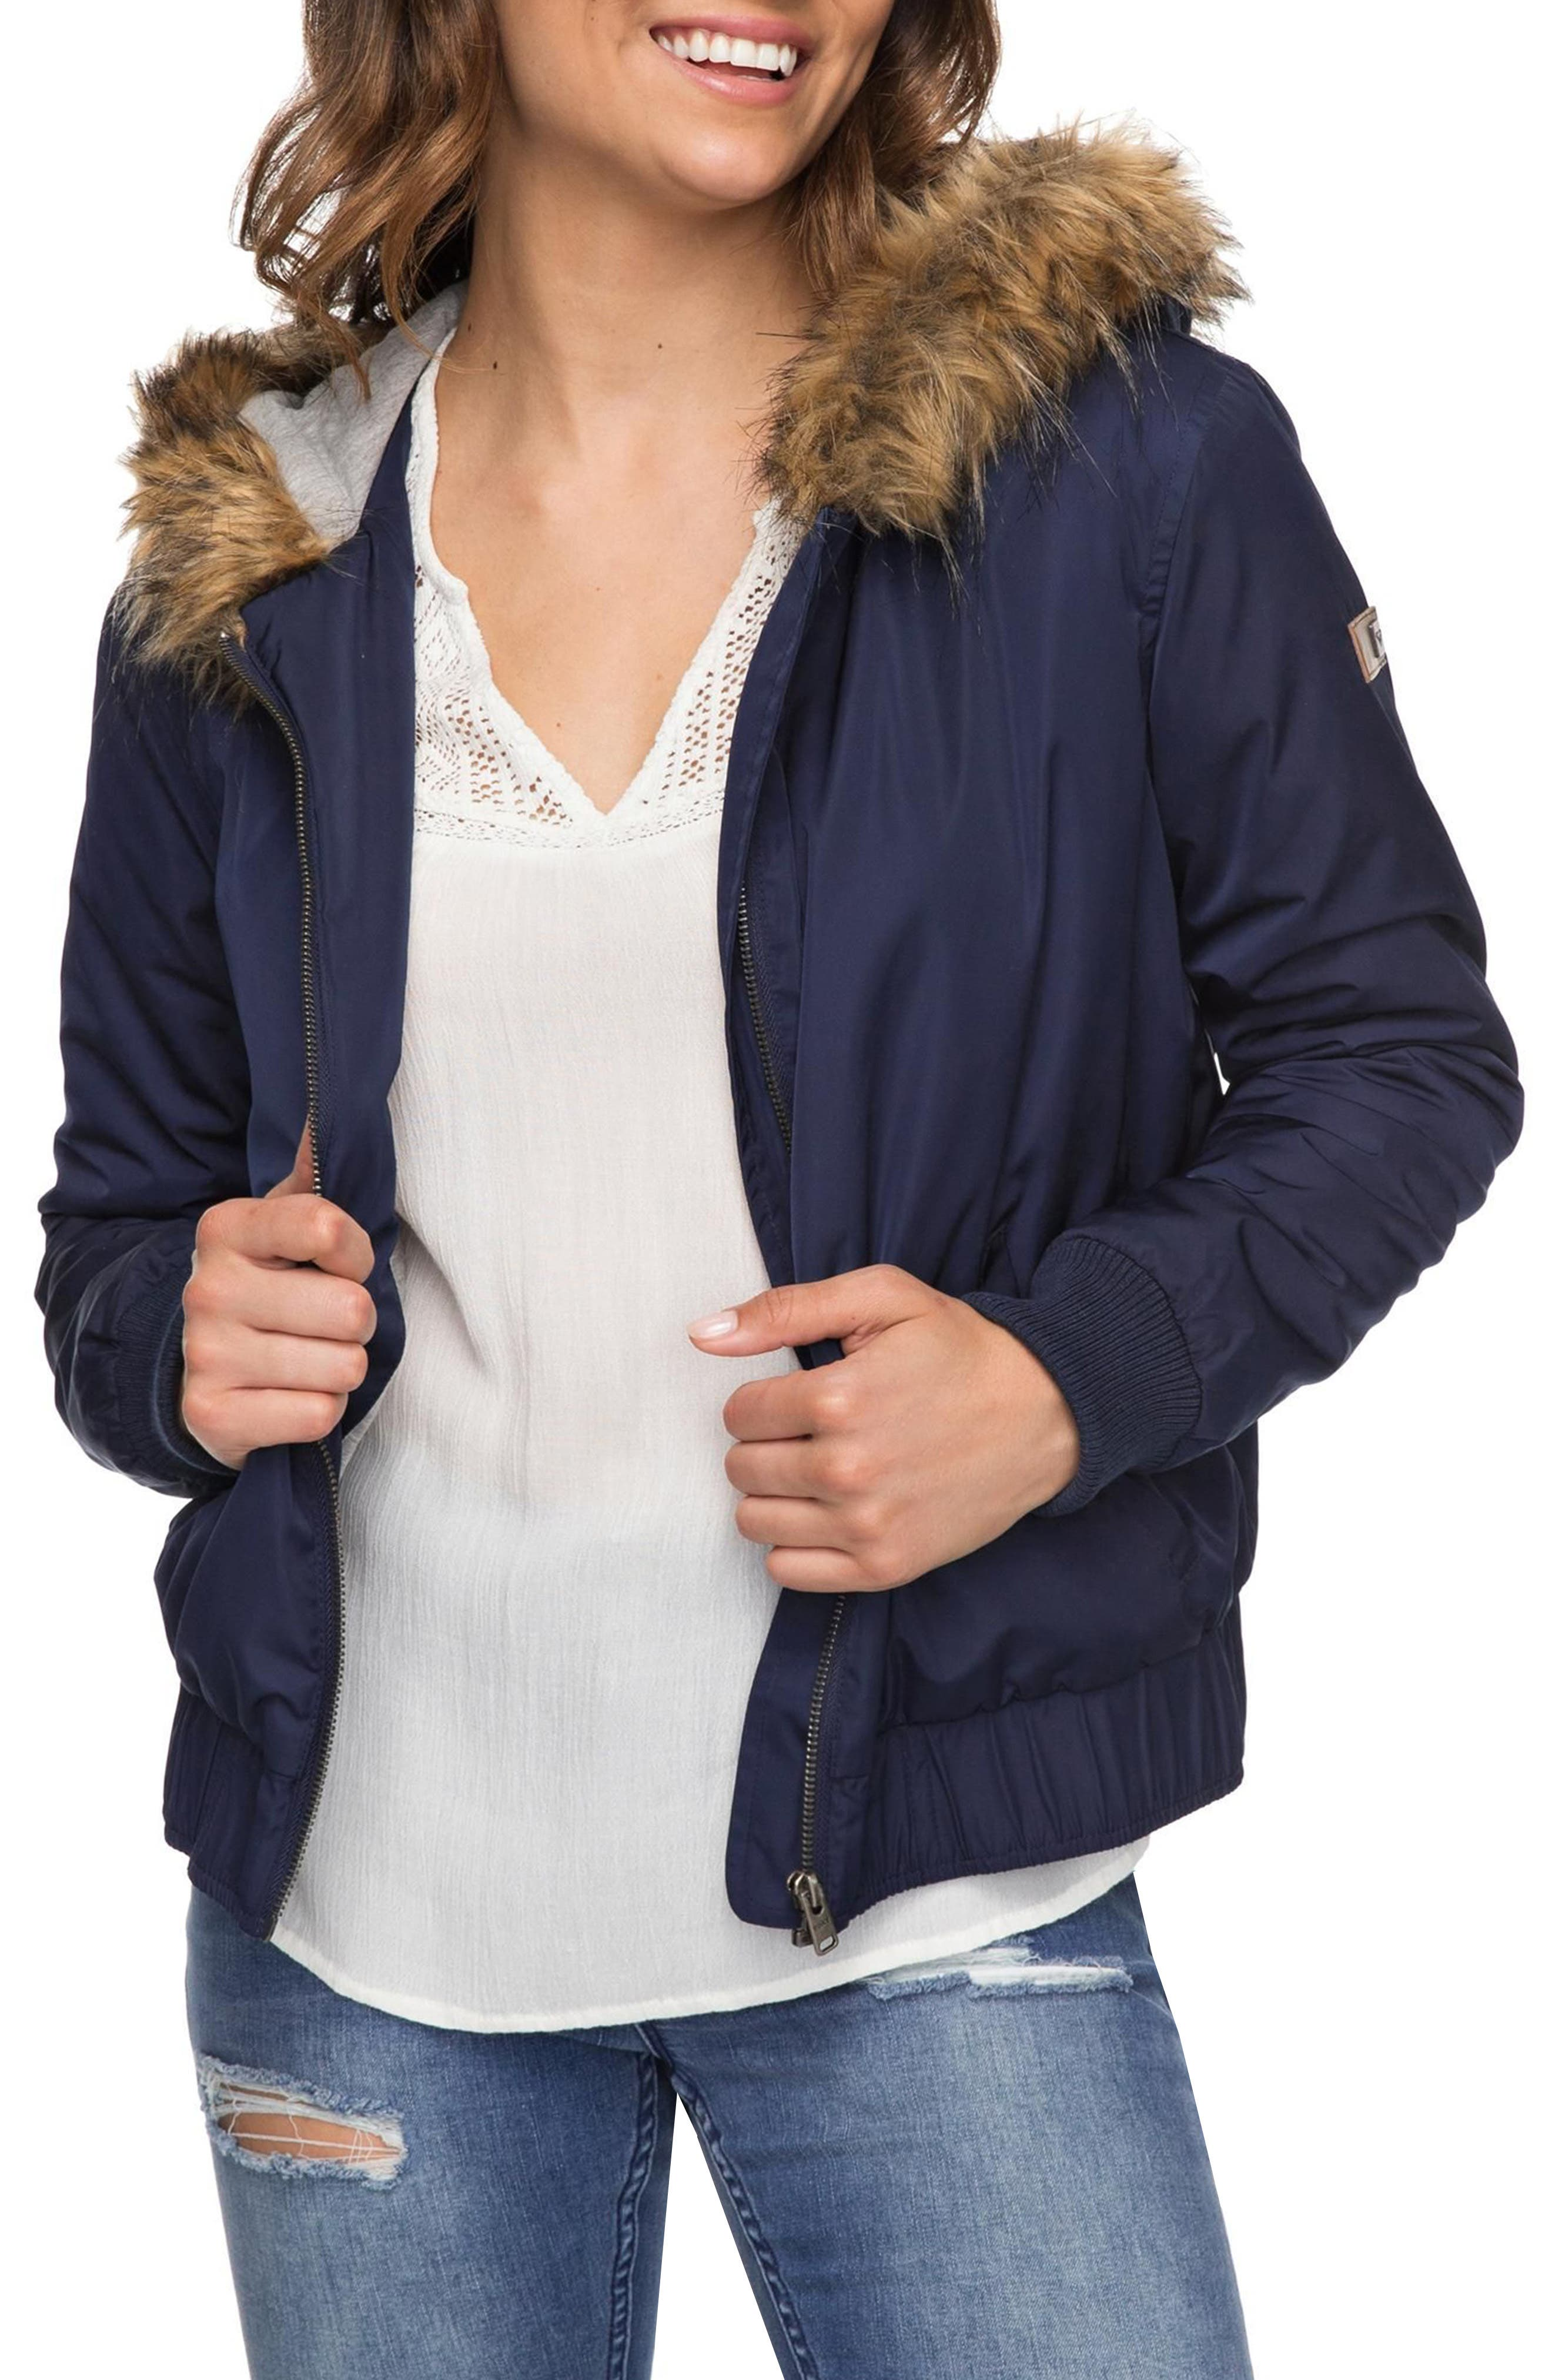 Oh Reely Faux Fur Bomber Jacket,                             Main thumbnail 1, color,